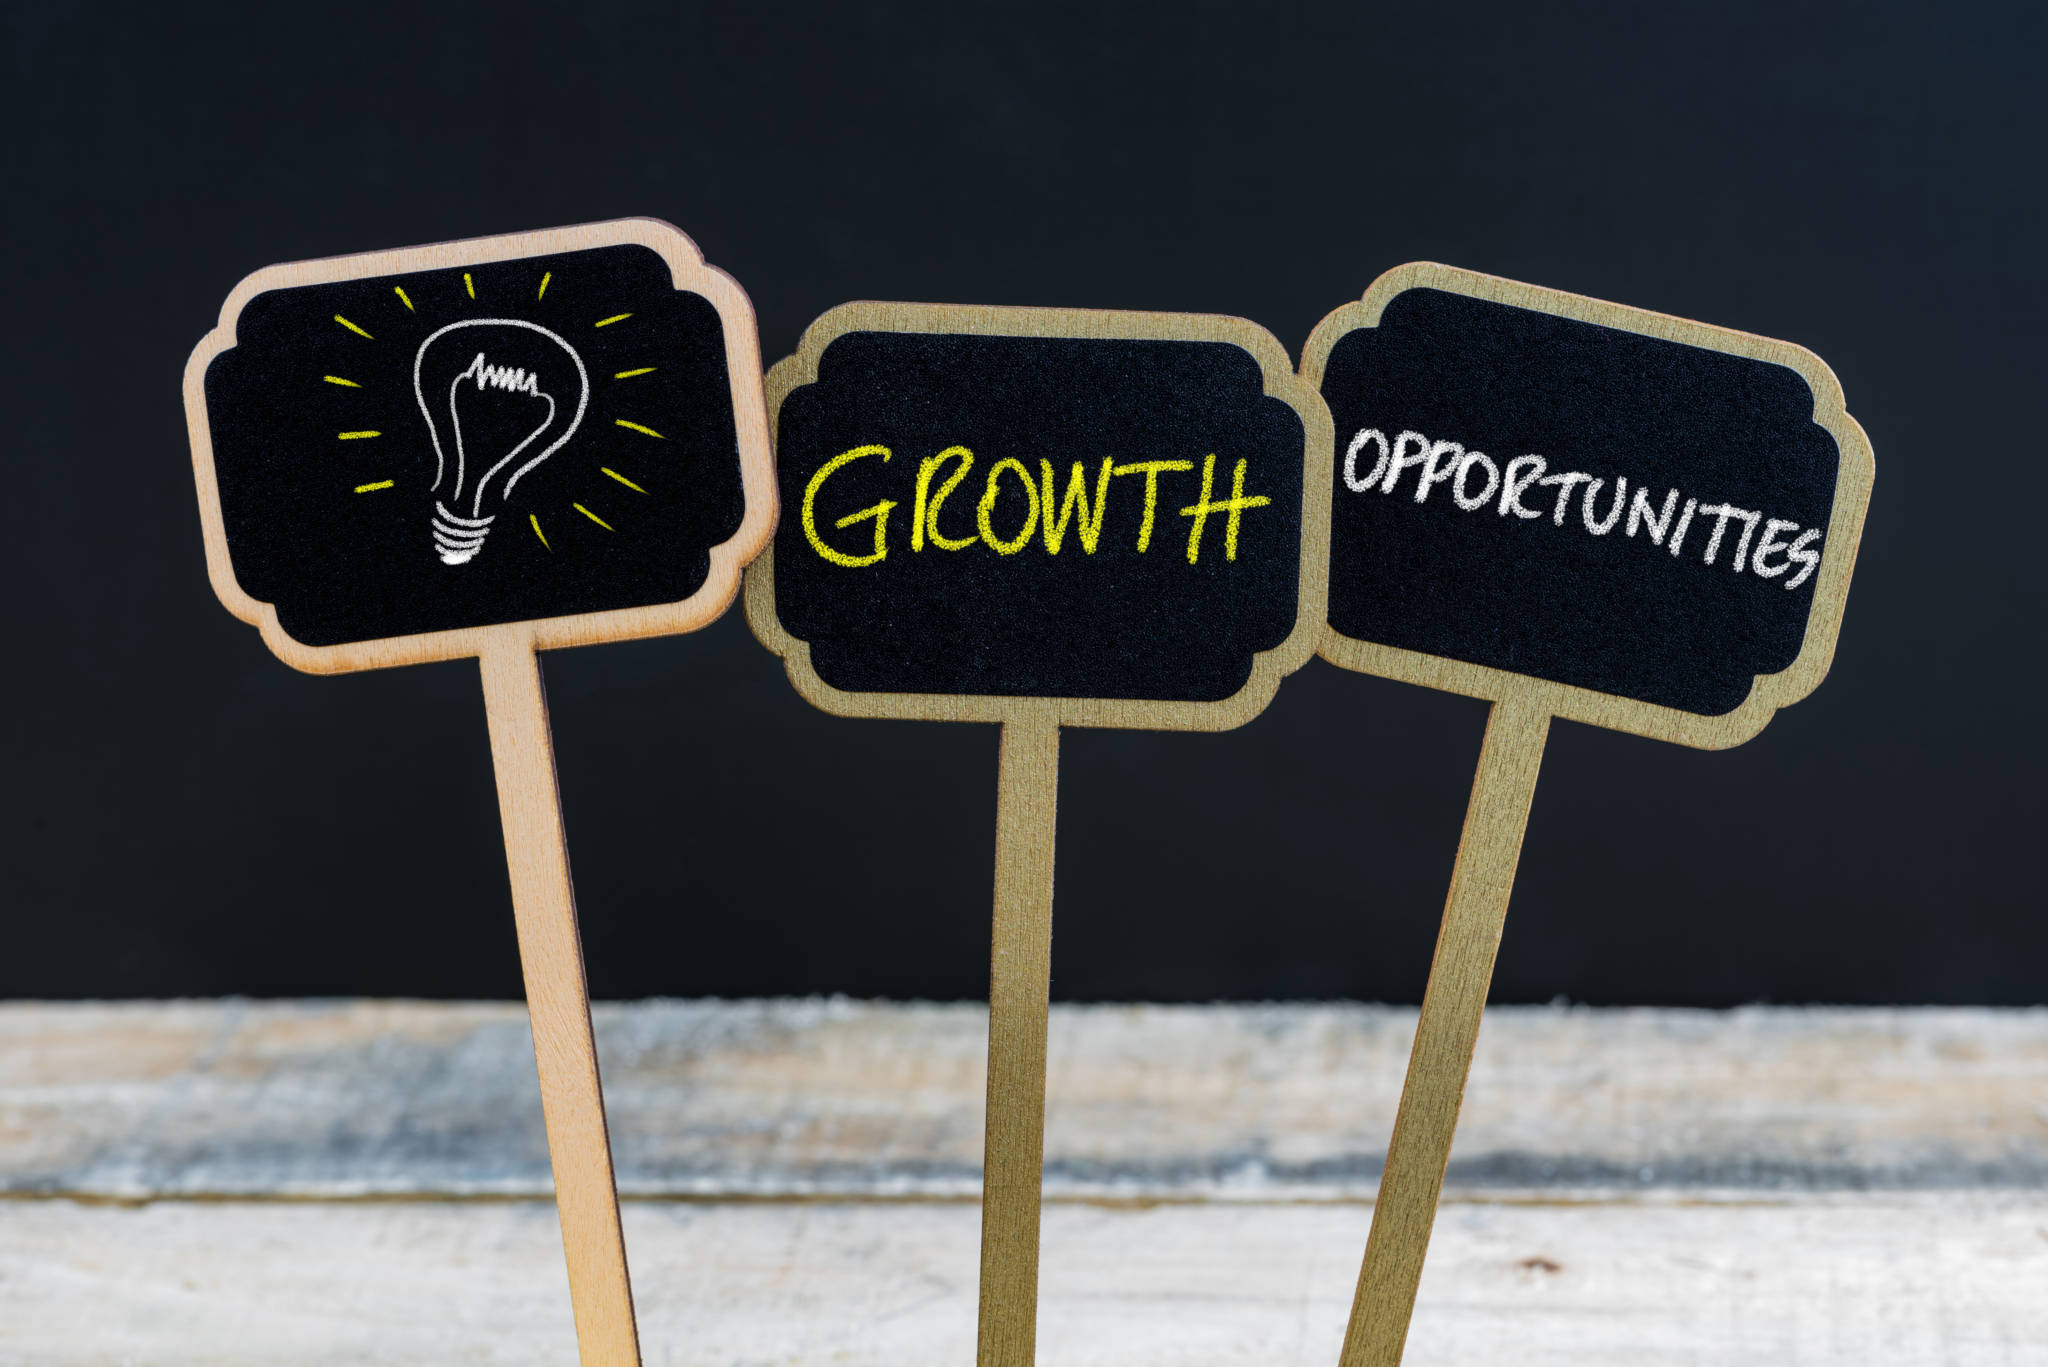 growth attract opportunities